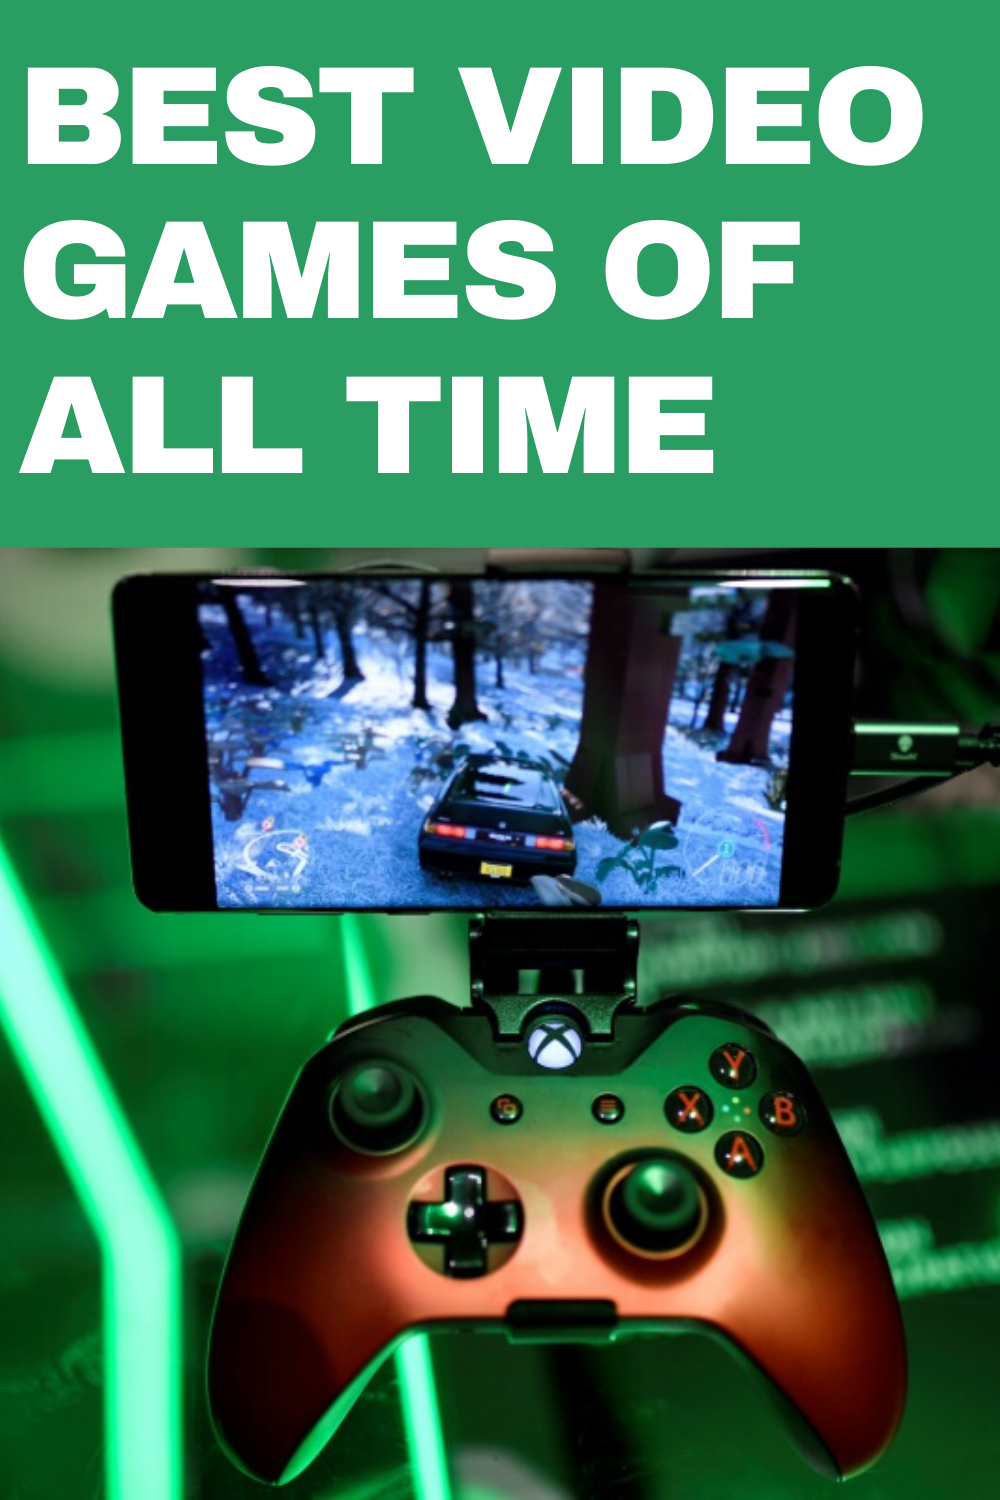 The 50 Best Video Games of All Time Ranked in 2020 Video